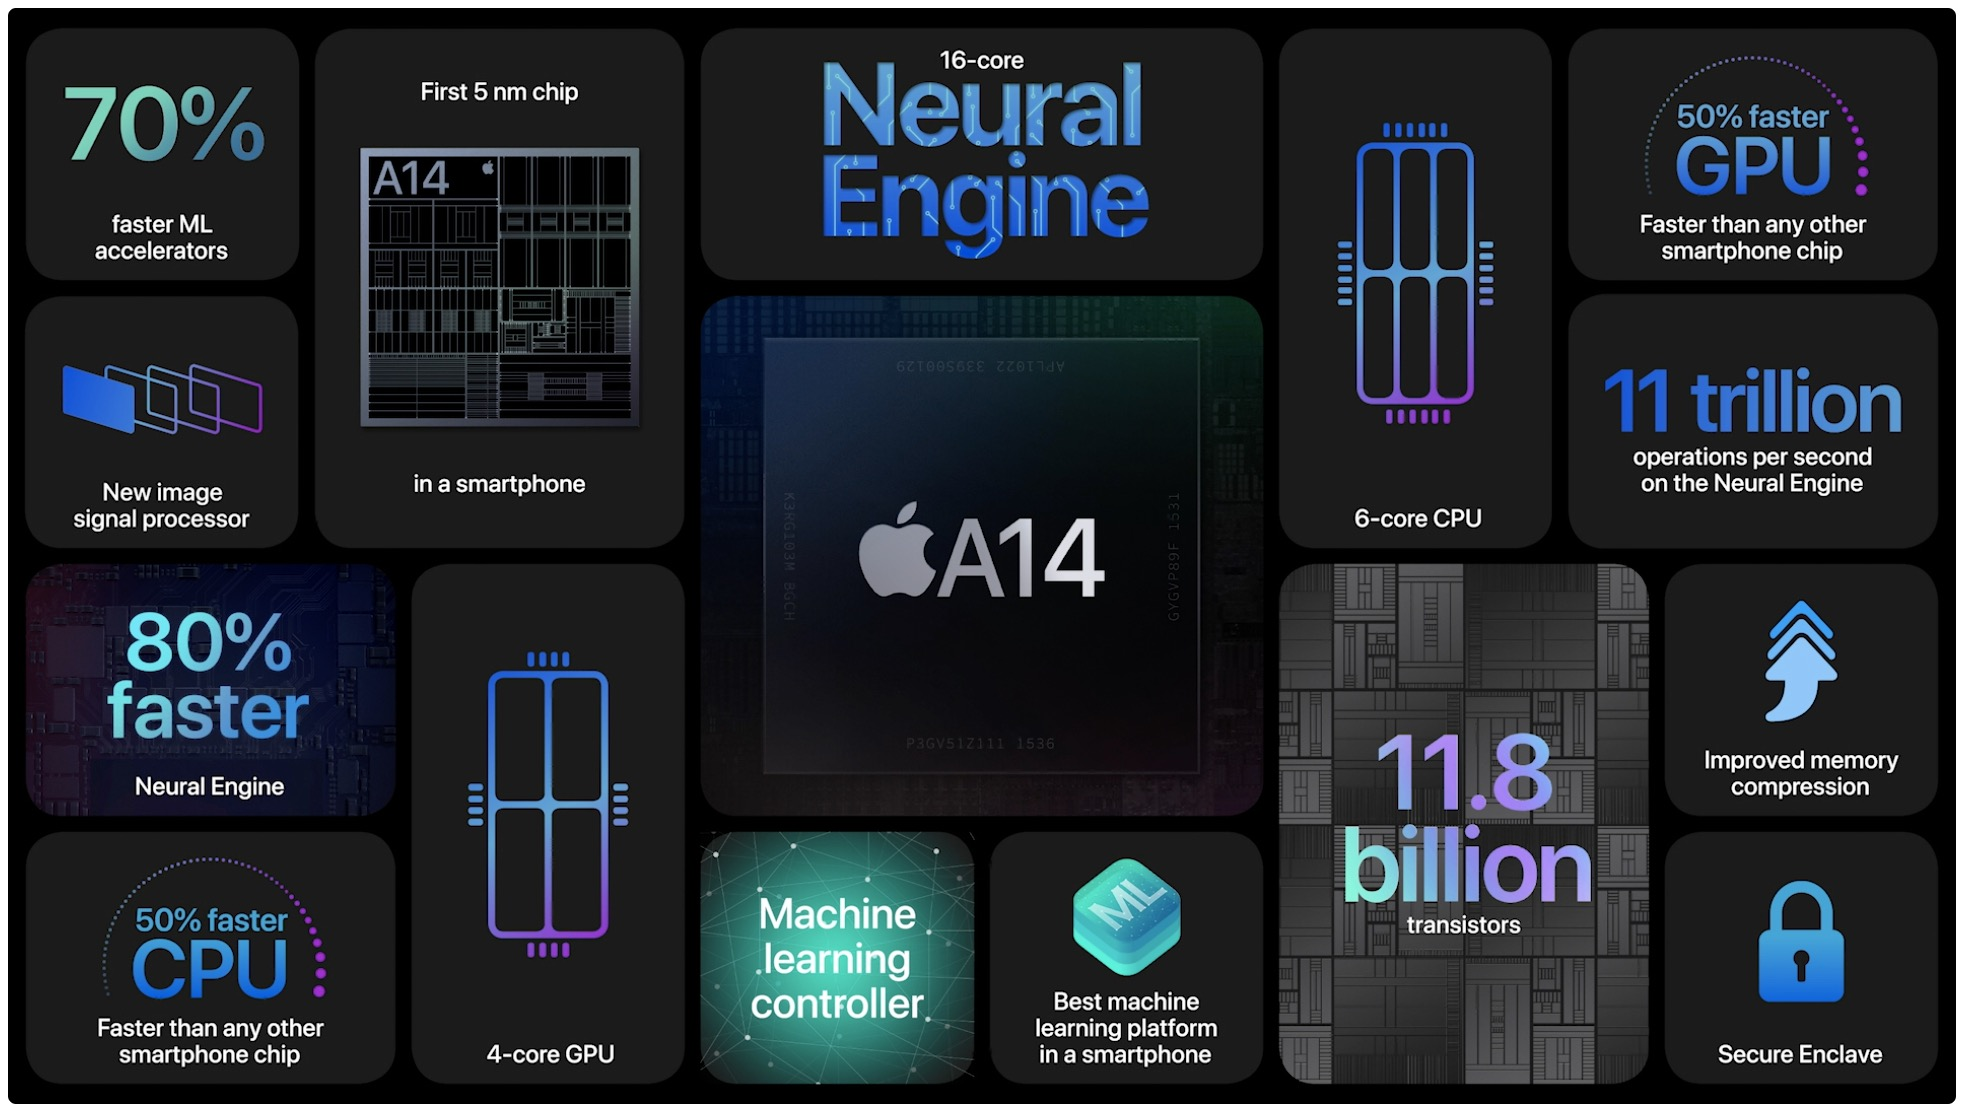 An Apple slide listing the features of the A14 Bionic chip